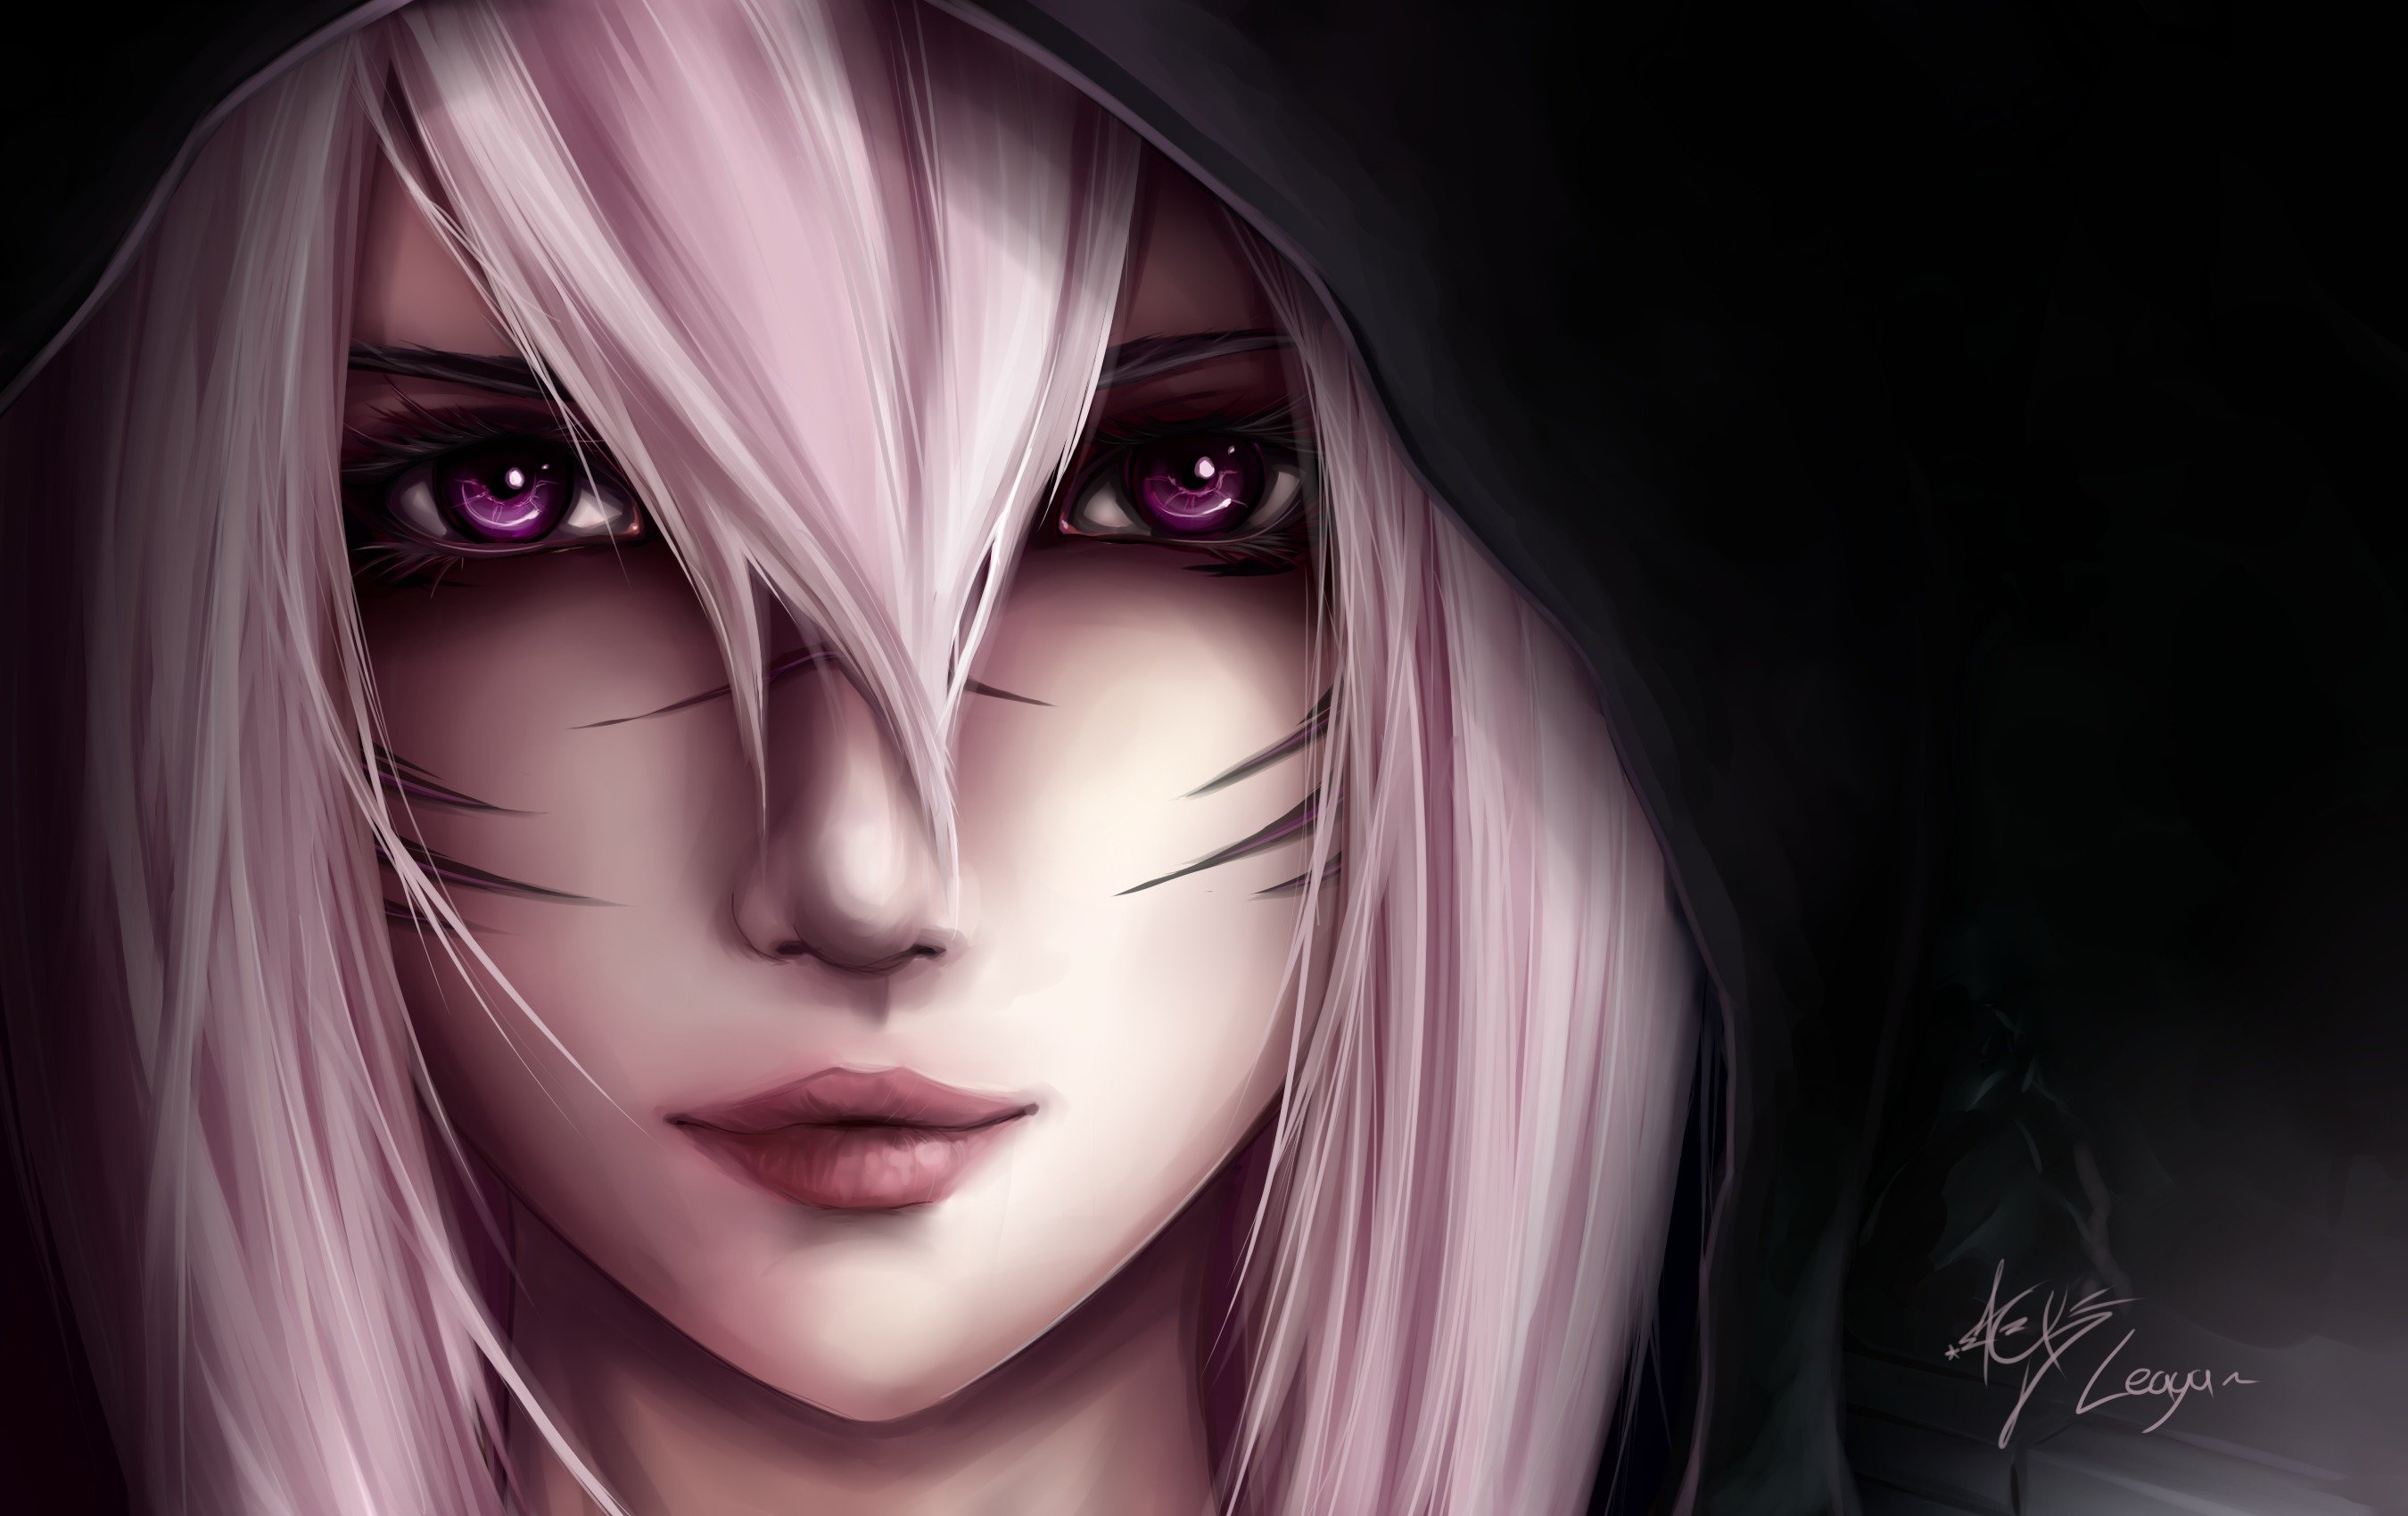 hood black background girl pink hair wallpaper | 2700x1700 | 493211